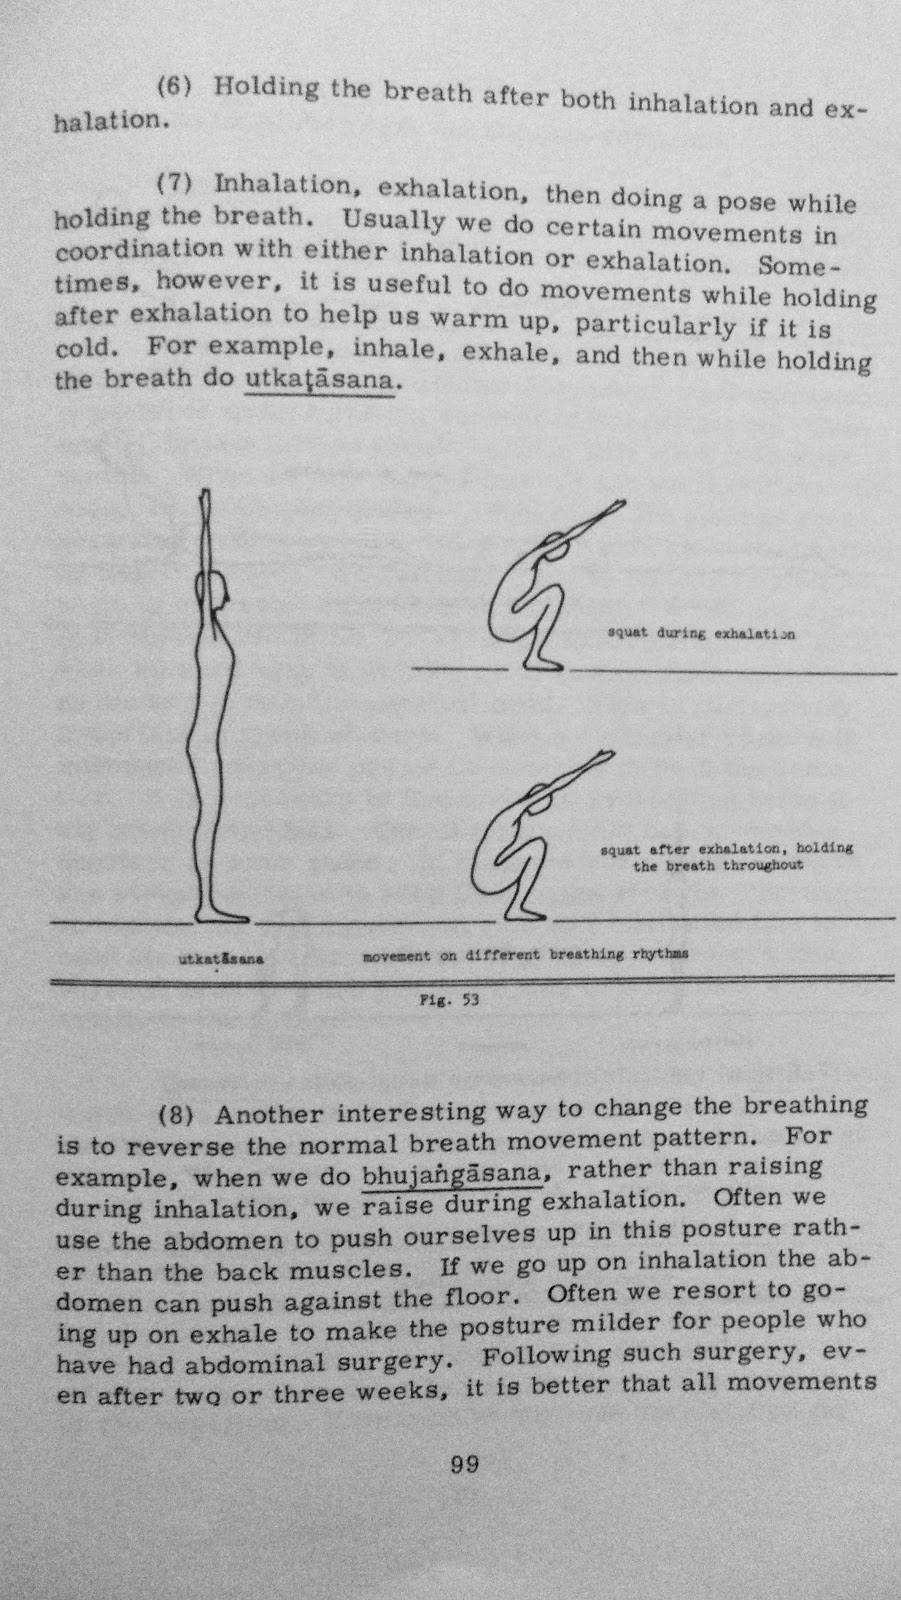 Krishnamacharyas Mysore Yogaat Home Using The Breath In Asana Inhalation And Exhalation Diagram Puraka To Link This With Something Interesting I Saw On Fb Morning Take A Look At Dedication Page First Edition Of Desikachars Book